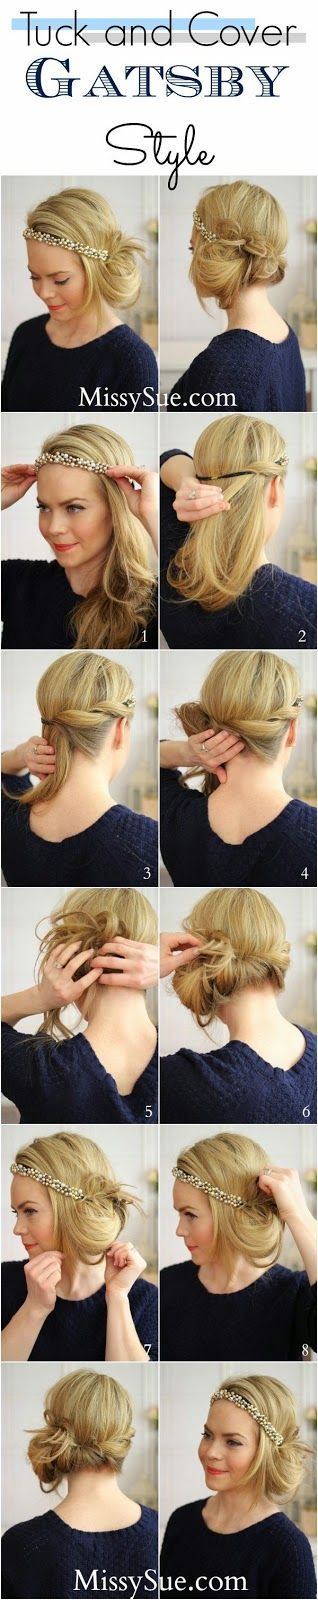 Tried this and I loved it as we'll as all my coworkers! Deff a quick but cute updo. Jm